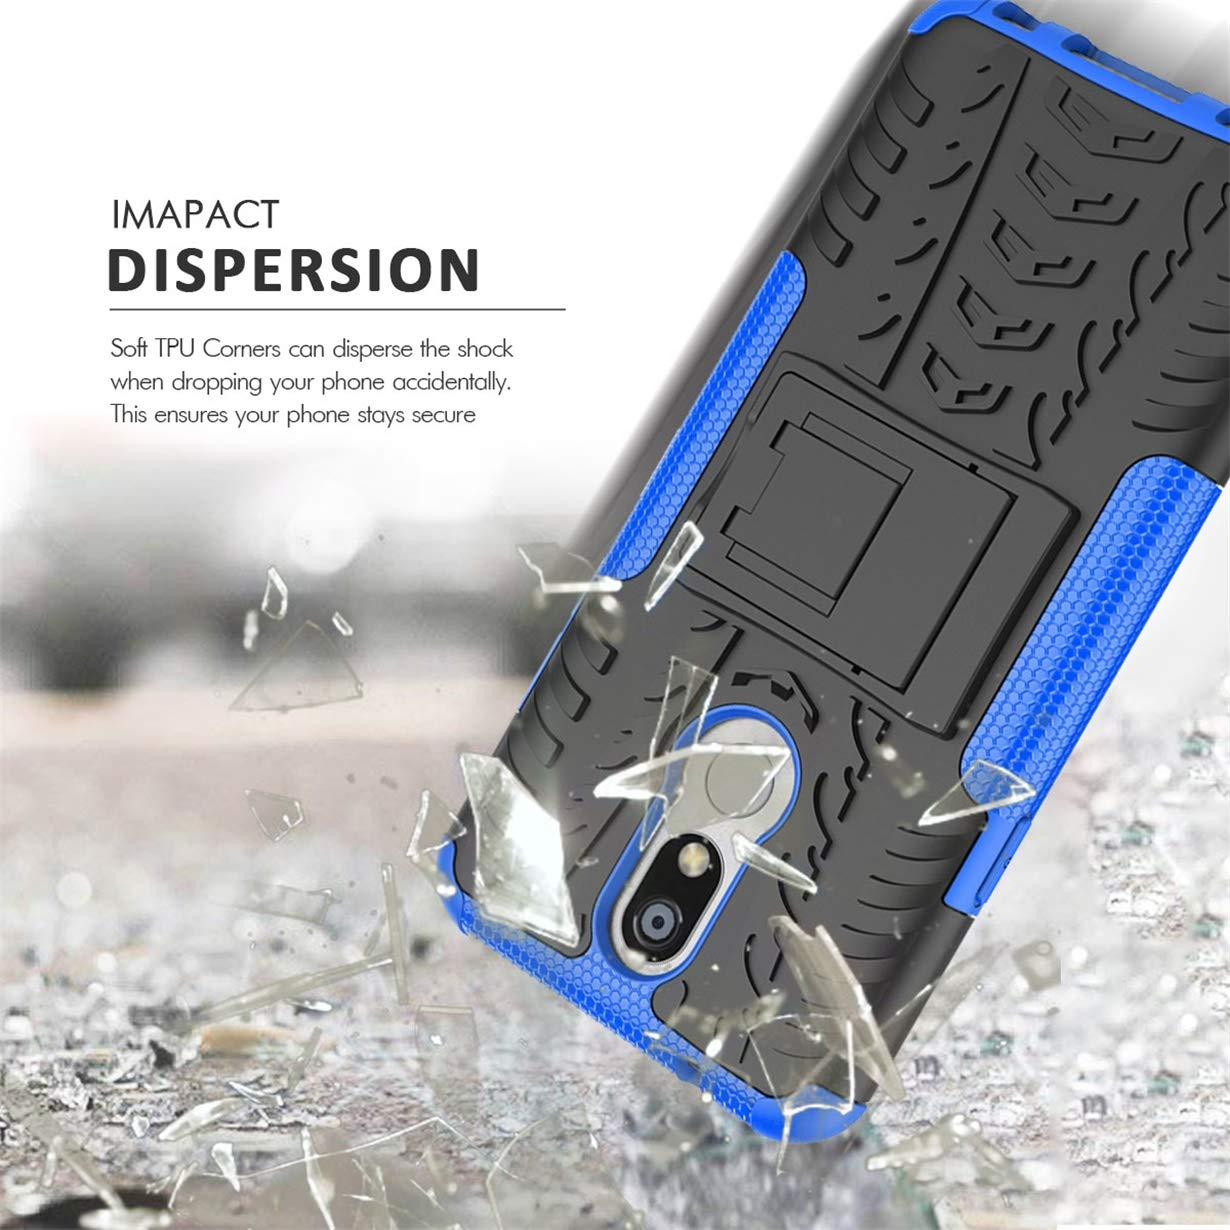 Numy LG K40 Case,LG K12 Plus,LG X4 2019 Case,Dual Layer Shockproof,W HD Screen Protector,Highly Protective w Kickstand Hard PC /& Soft TPU Phone Case,Attractive Tire Appearance-Blue